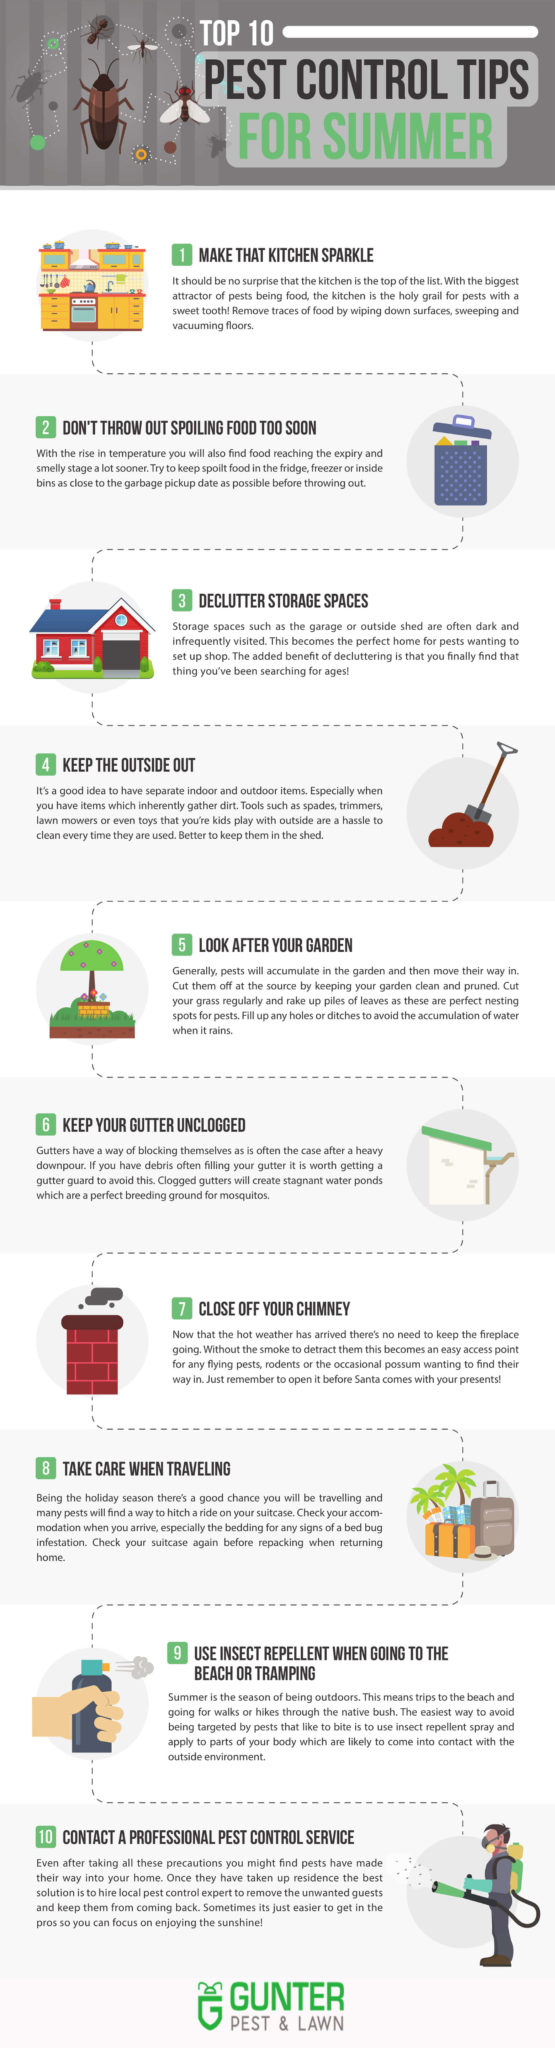 Here are the top 10 pest control tips for summer brought to you by Gunter Pest & Lawn